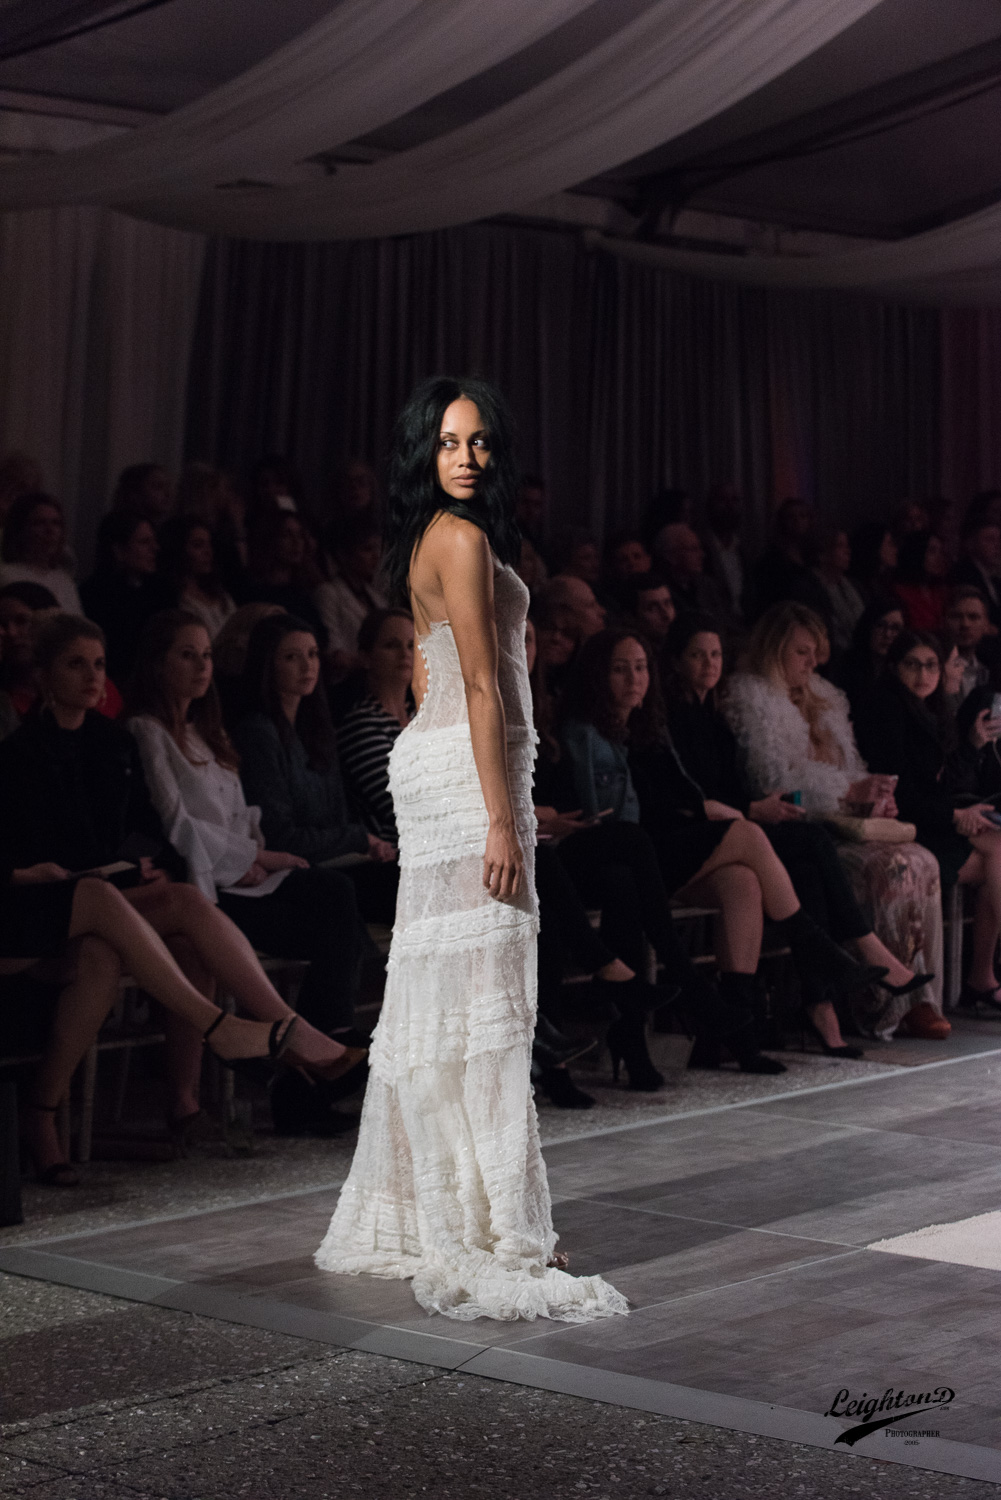 Animoto-ModernTrousseau-CHS Wedding Week 2018-LeightonD-9764.jpg